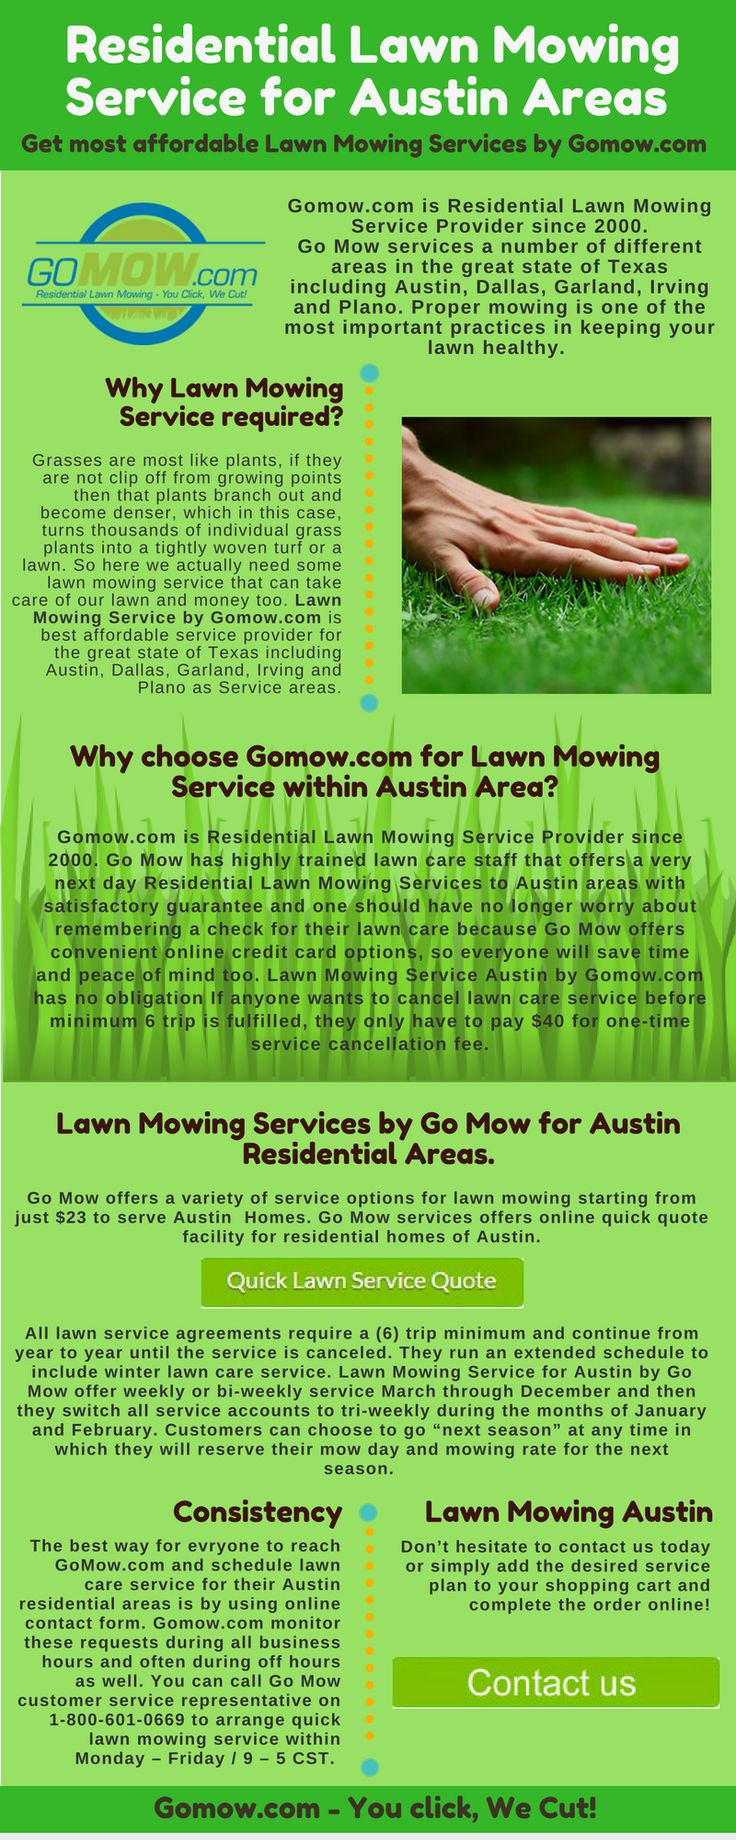 Lawn care advertising ideas - Gomow Com Is Residential Lawn Mowing Service Provider Since 2000 Go Mow Has Highly